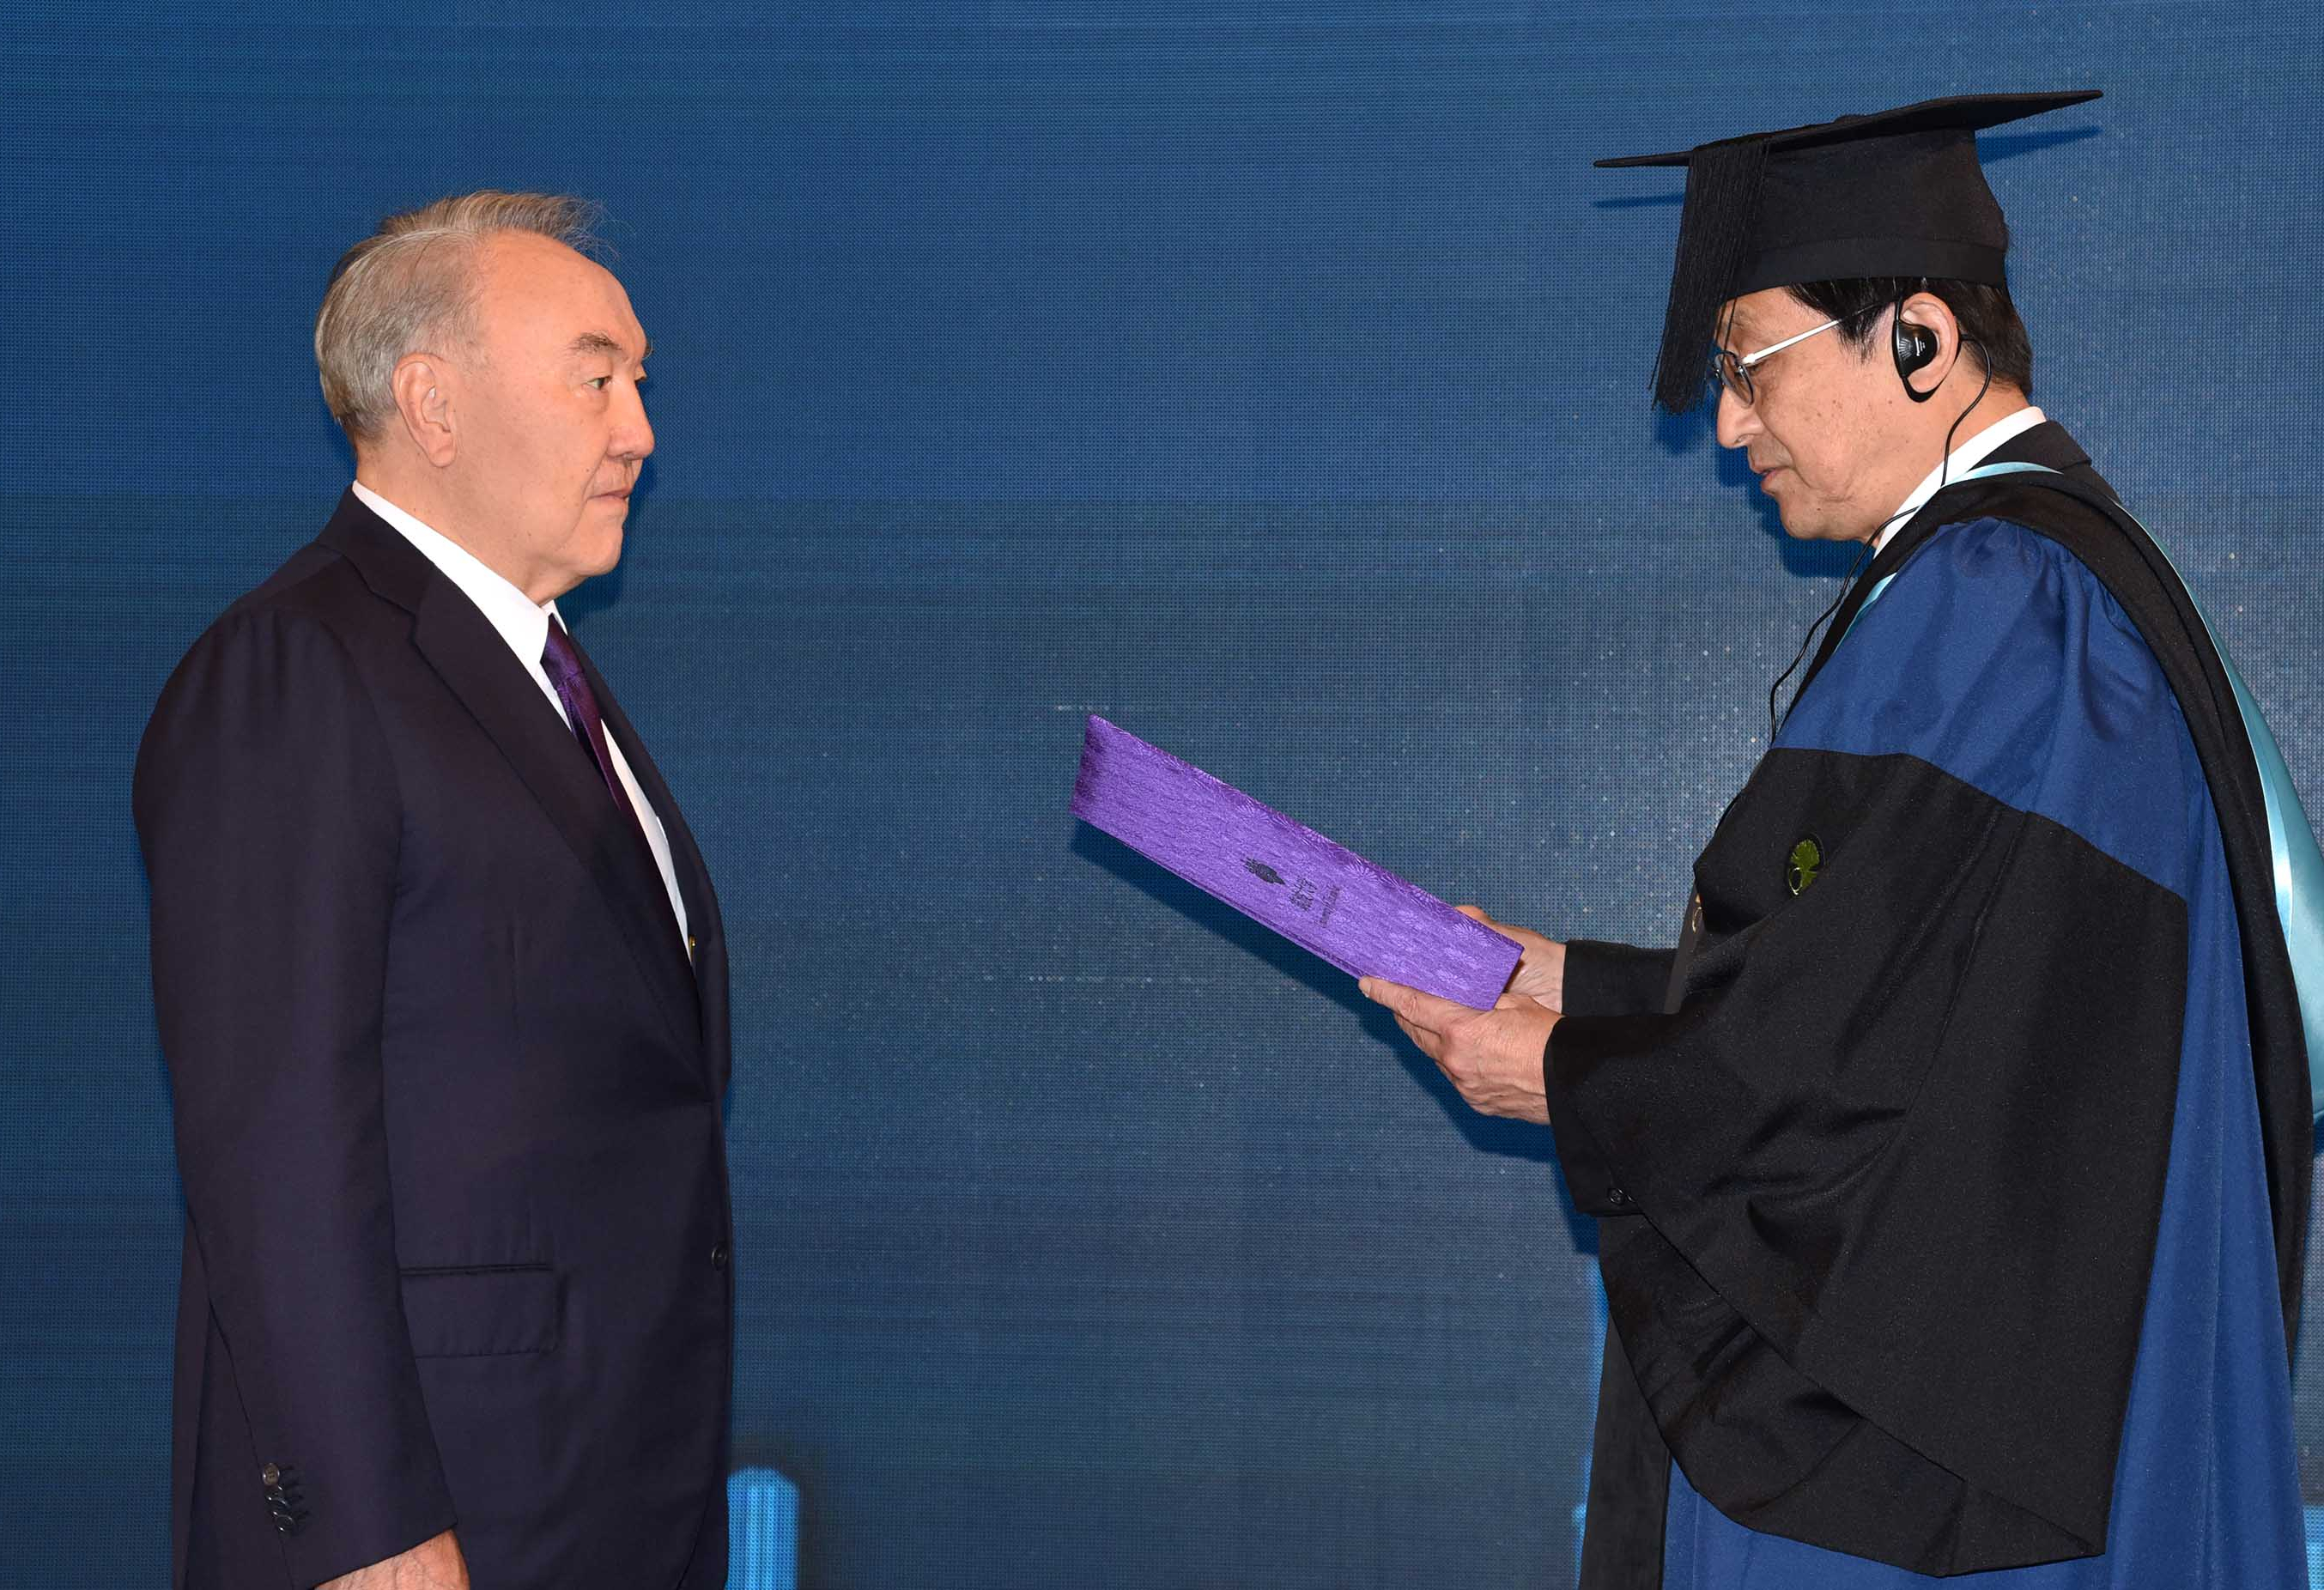 a3d2b2db0e09763715ee56fa5939c272 - Nazarbayev awarded the title of Honorary doctor of the University of Tsukuba